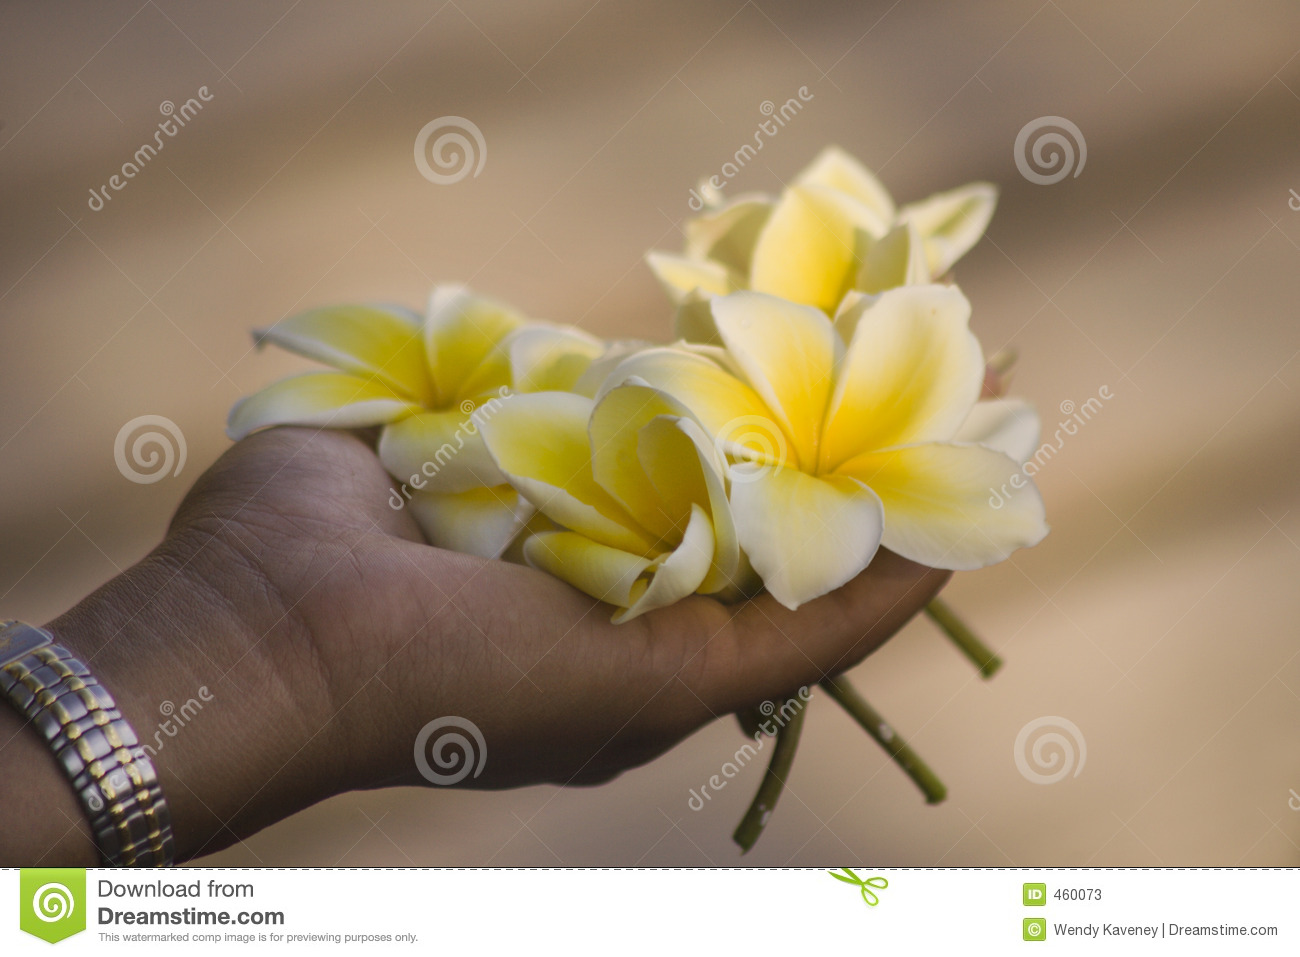 Download A Handful of Flowers stock image. Image of nature, white - 460073